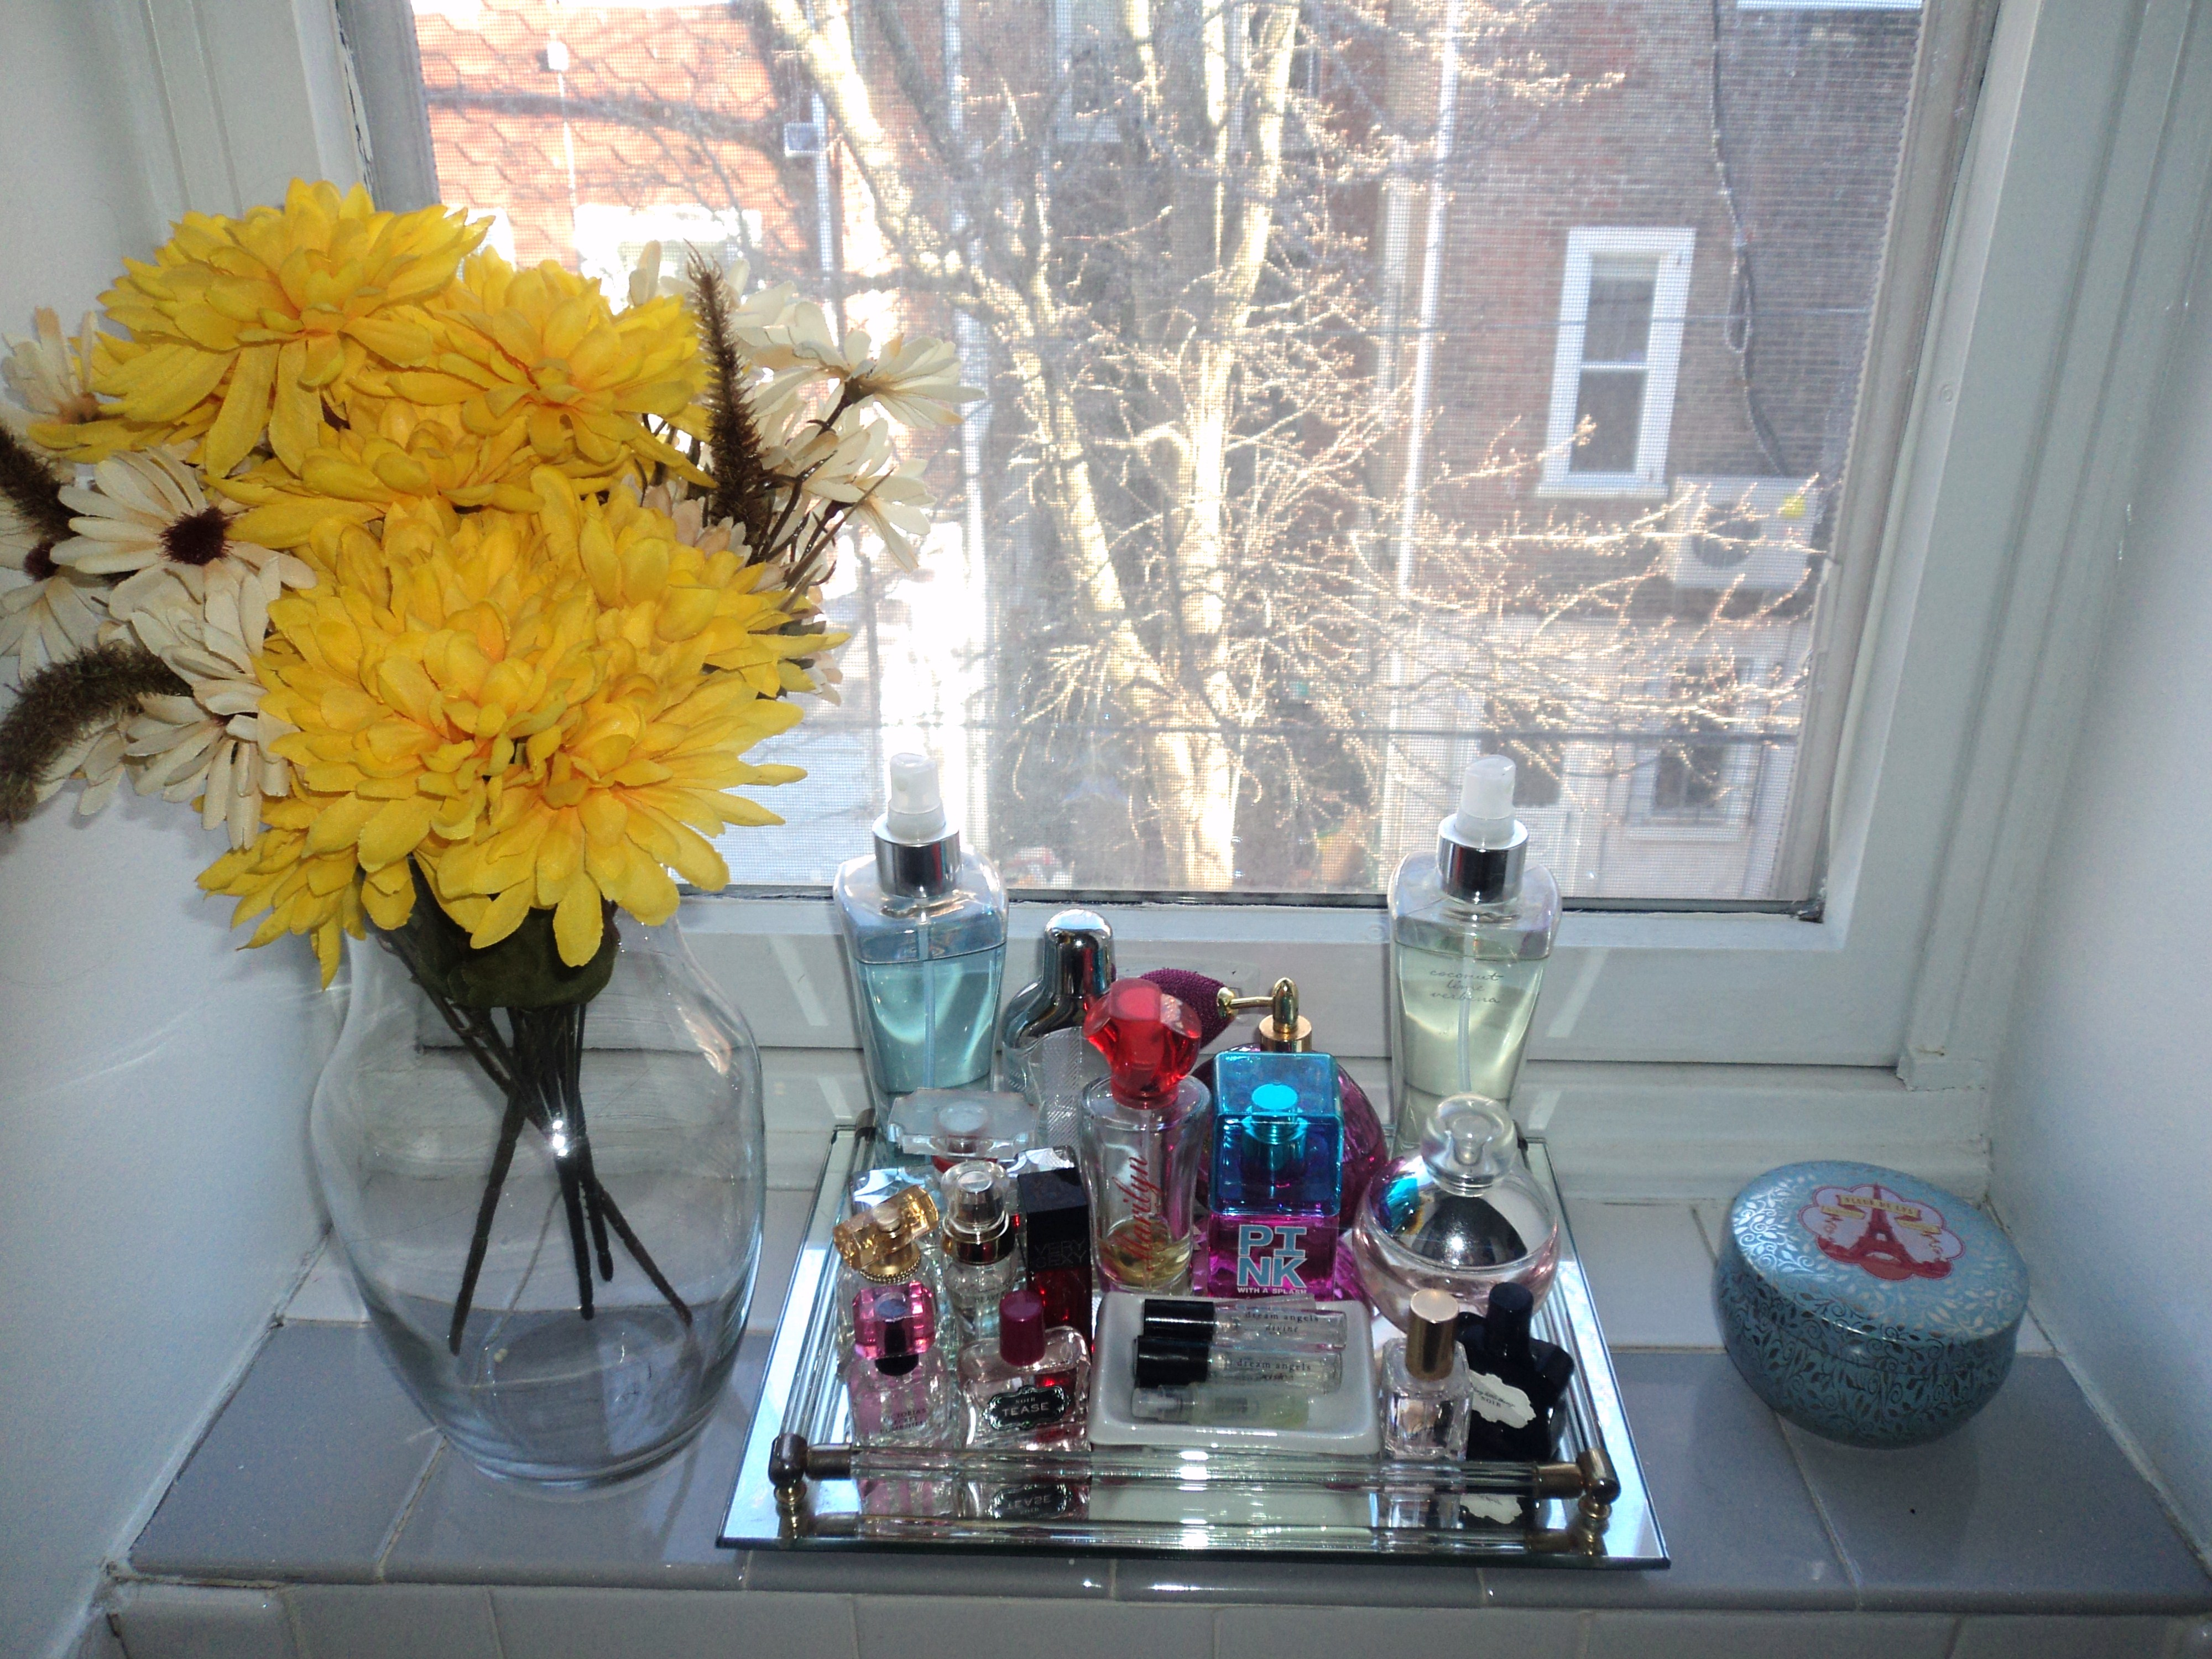 Her Philly; Decorating Ideas For A Bathroom Shelf In A Small City Apartment  Featuring Flowers